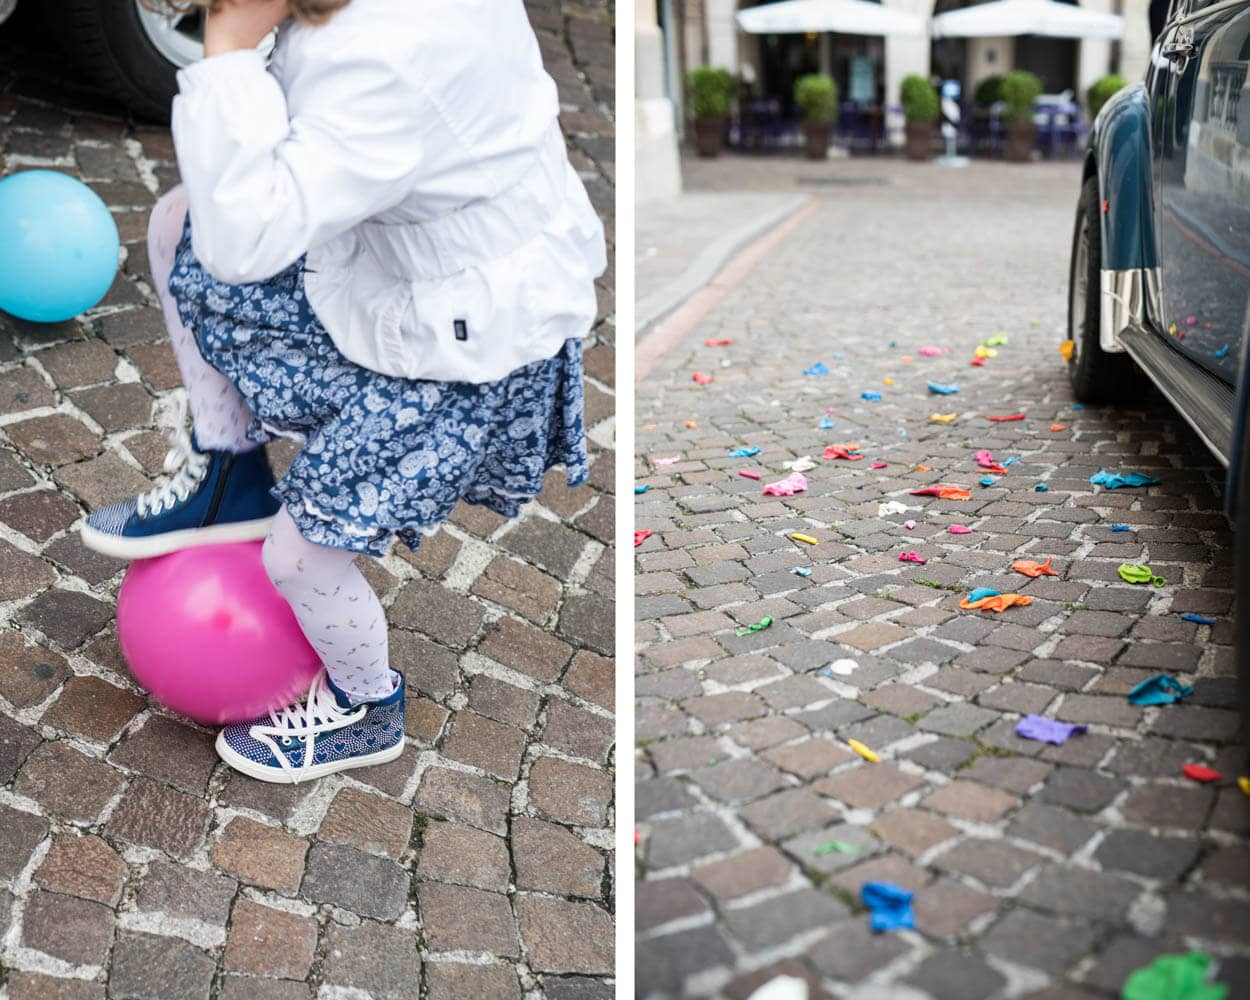 Kids and Baloons